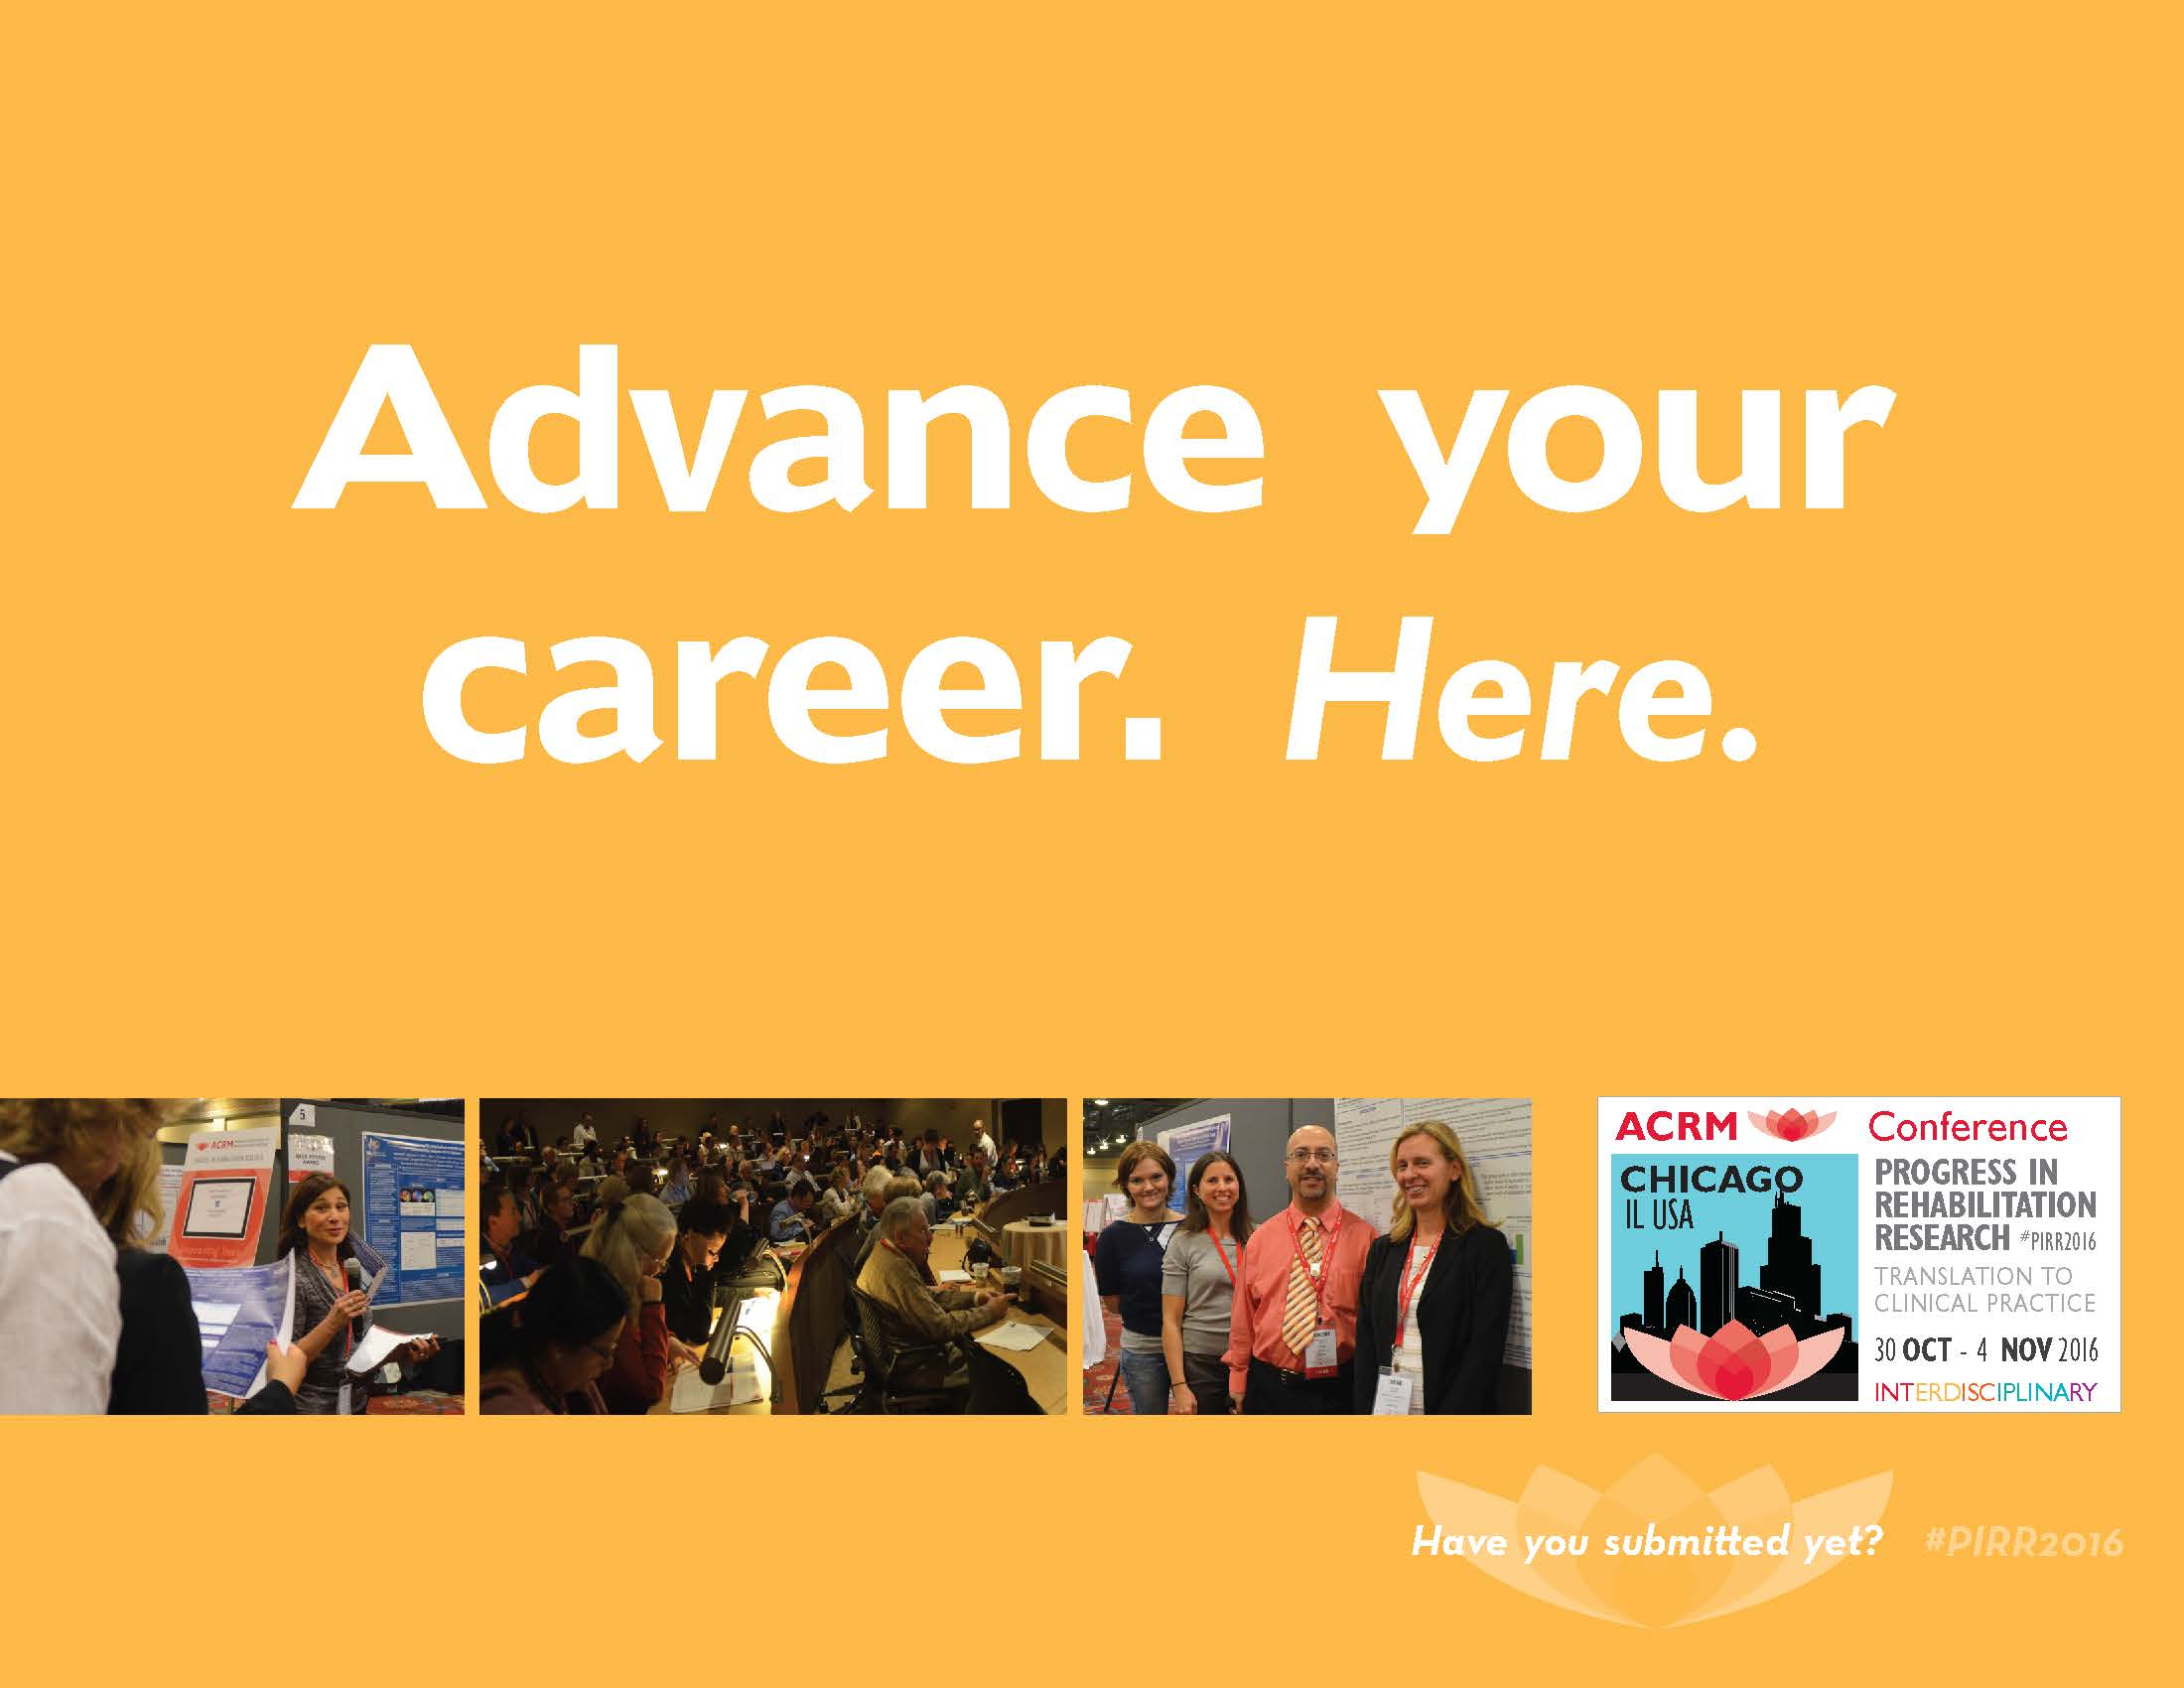 Advance your career. Here.